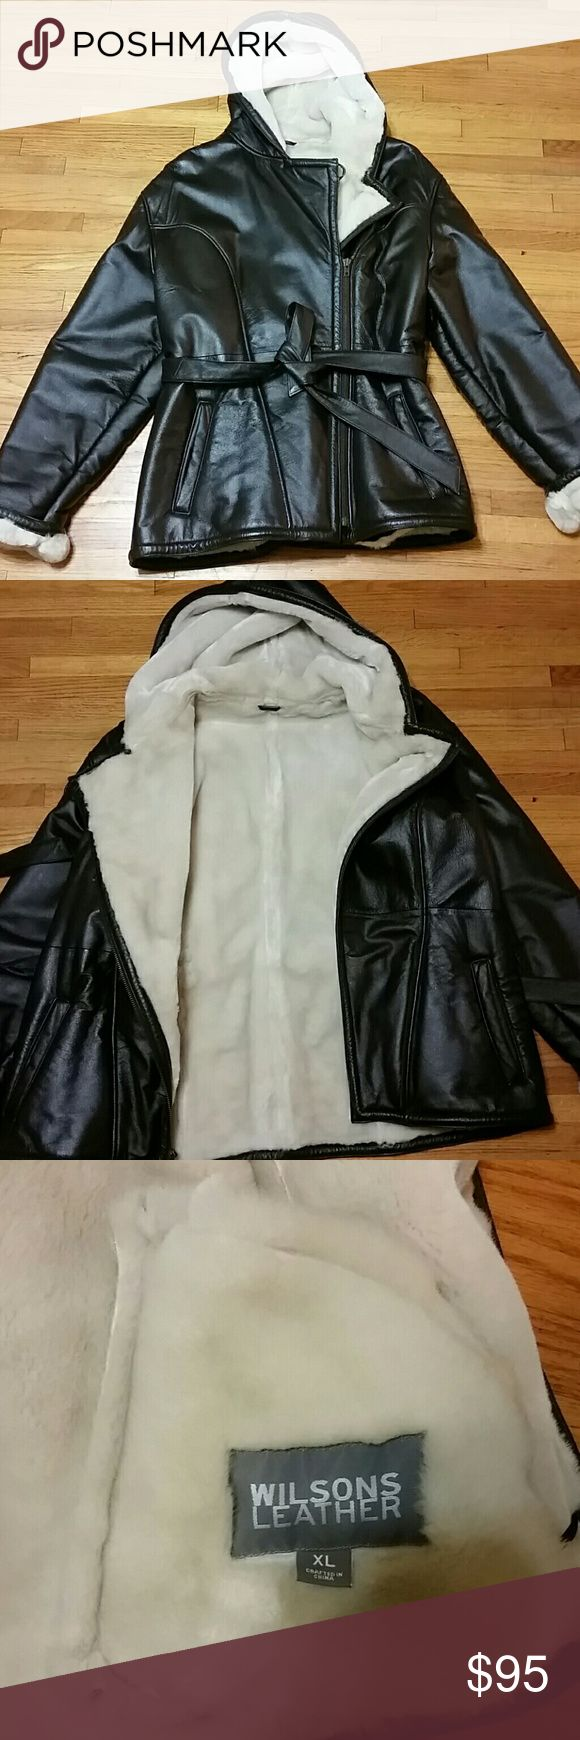 Wilson Leather coat color chocolate mocha Women's leather Wilson coat size XL great condition practically new wore it one time only Wilson Leather Jackets & Coats